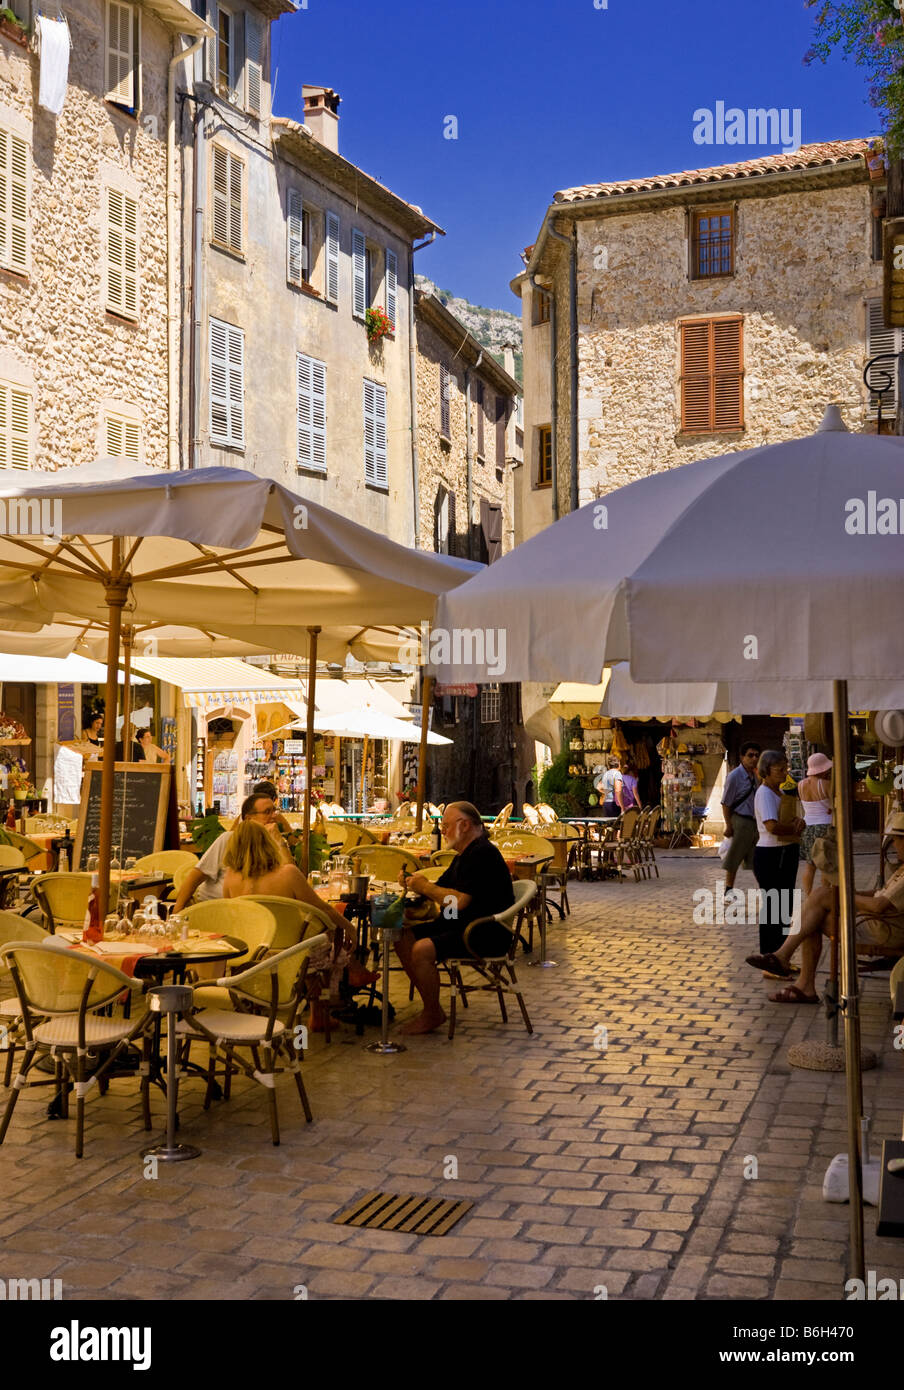 French cafe bar restaurants in the square in the old town of Vence, Cote D'Azur, Provence, France, South of - Stock Image